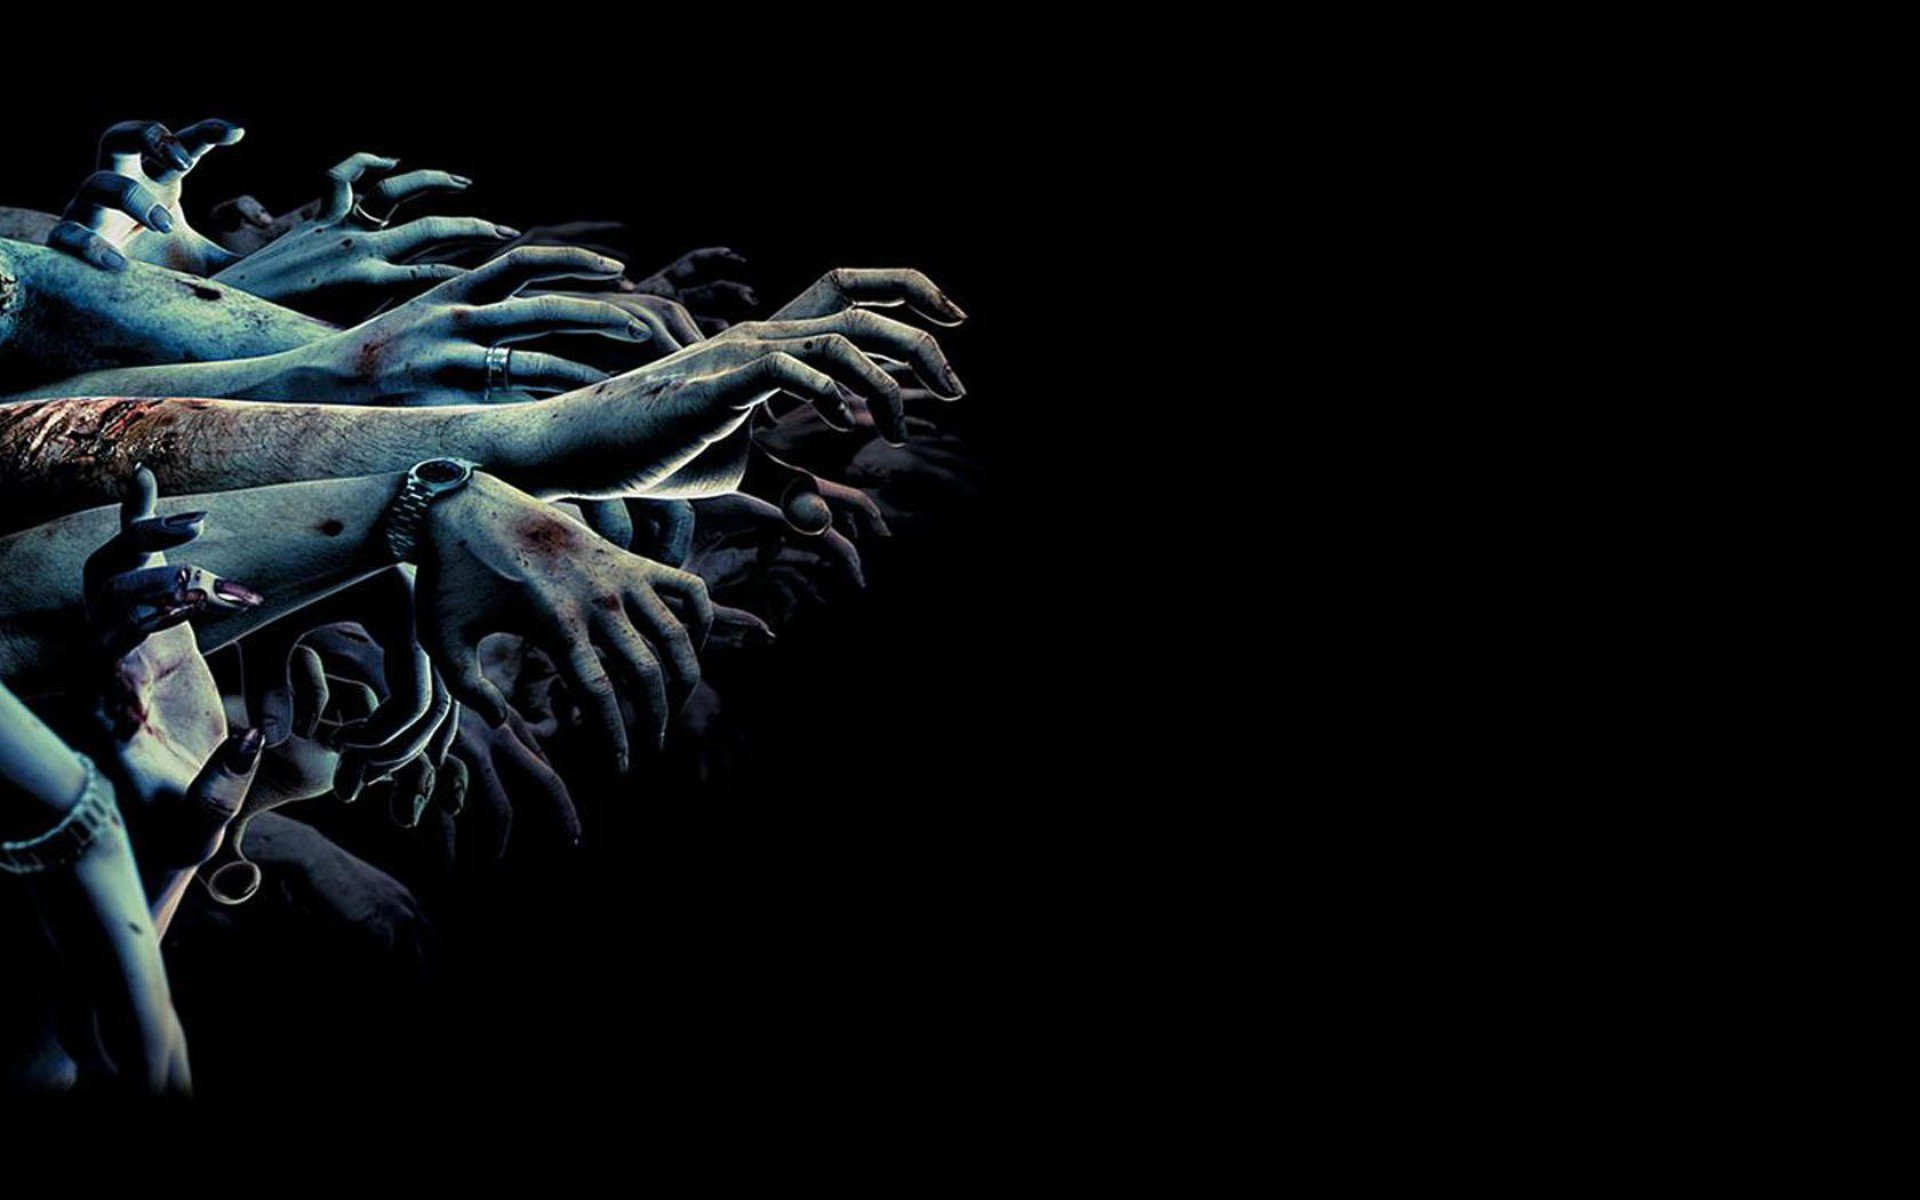 wallpaper-scary-horror-hands-other-zombie-wallpapers